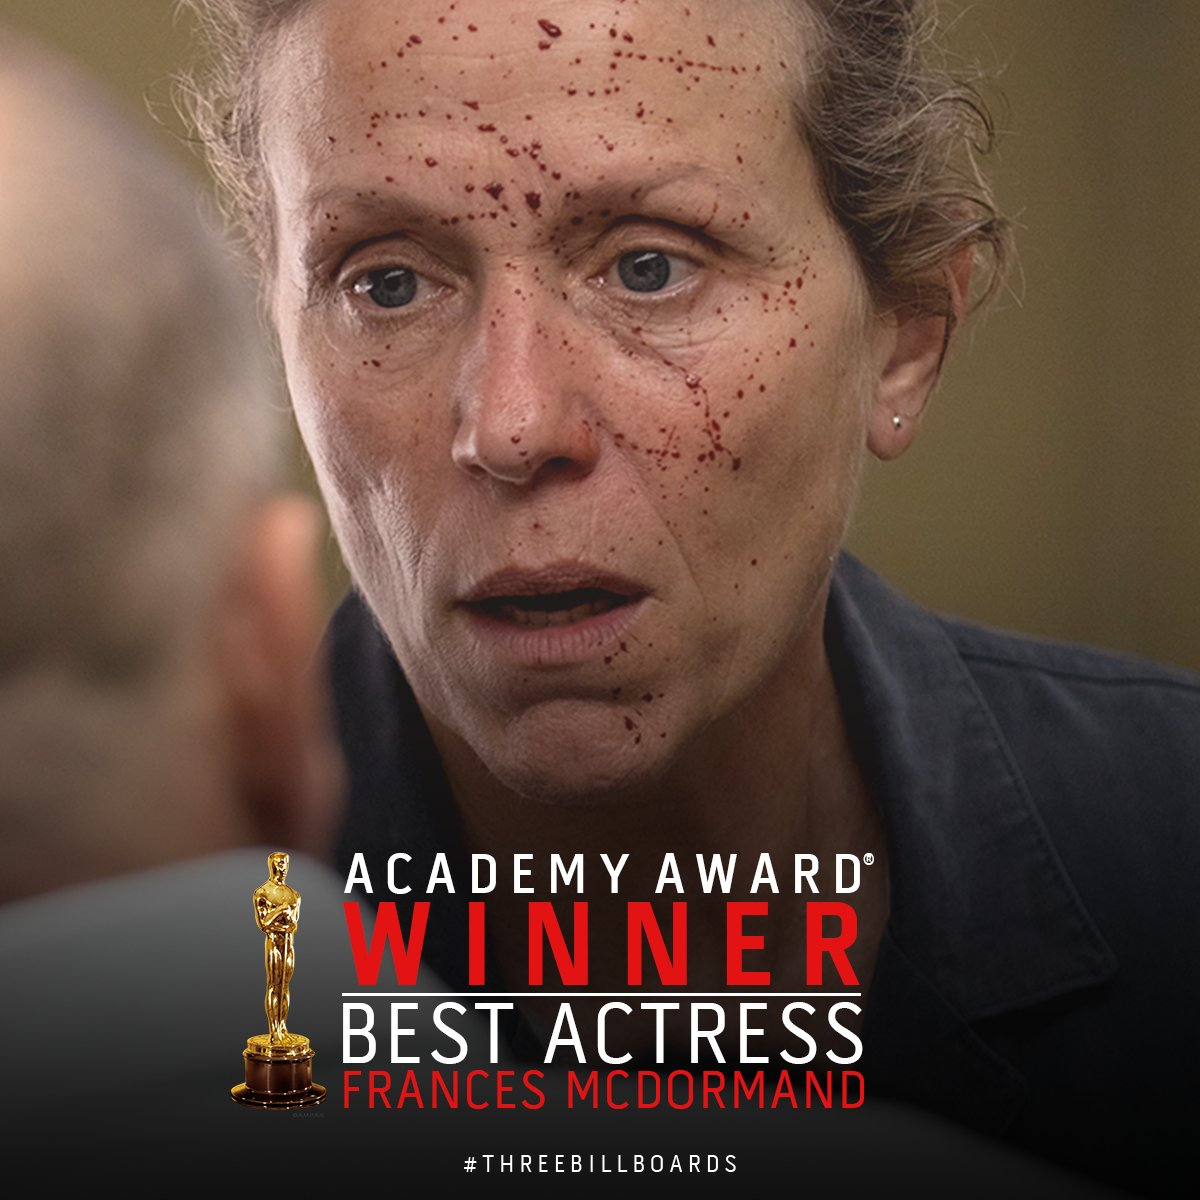 Blueprint pictures blueprintpics twitter look around ladies and gentlemen because we all have stories to share theacademy award winner for best actress frances mcdormand malvernweather Images